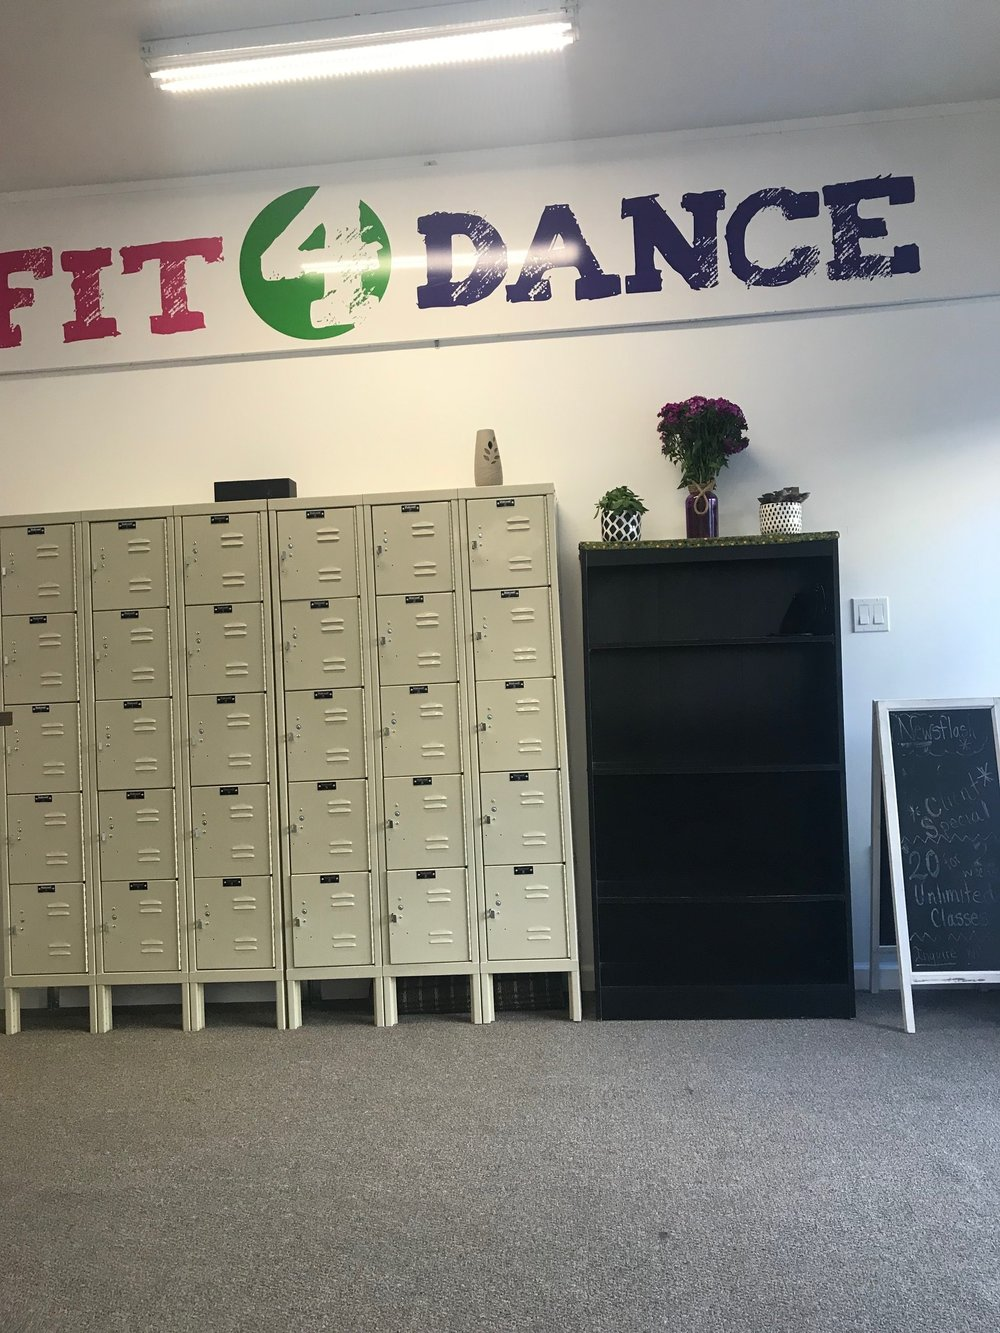 Fit4Dance Locker Area